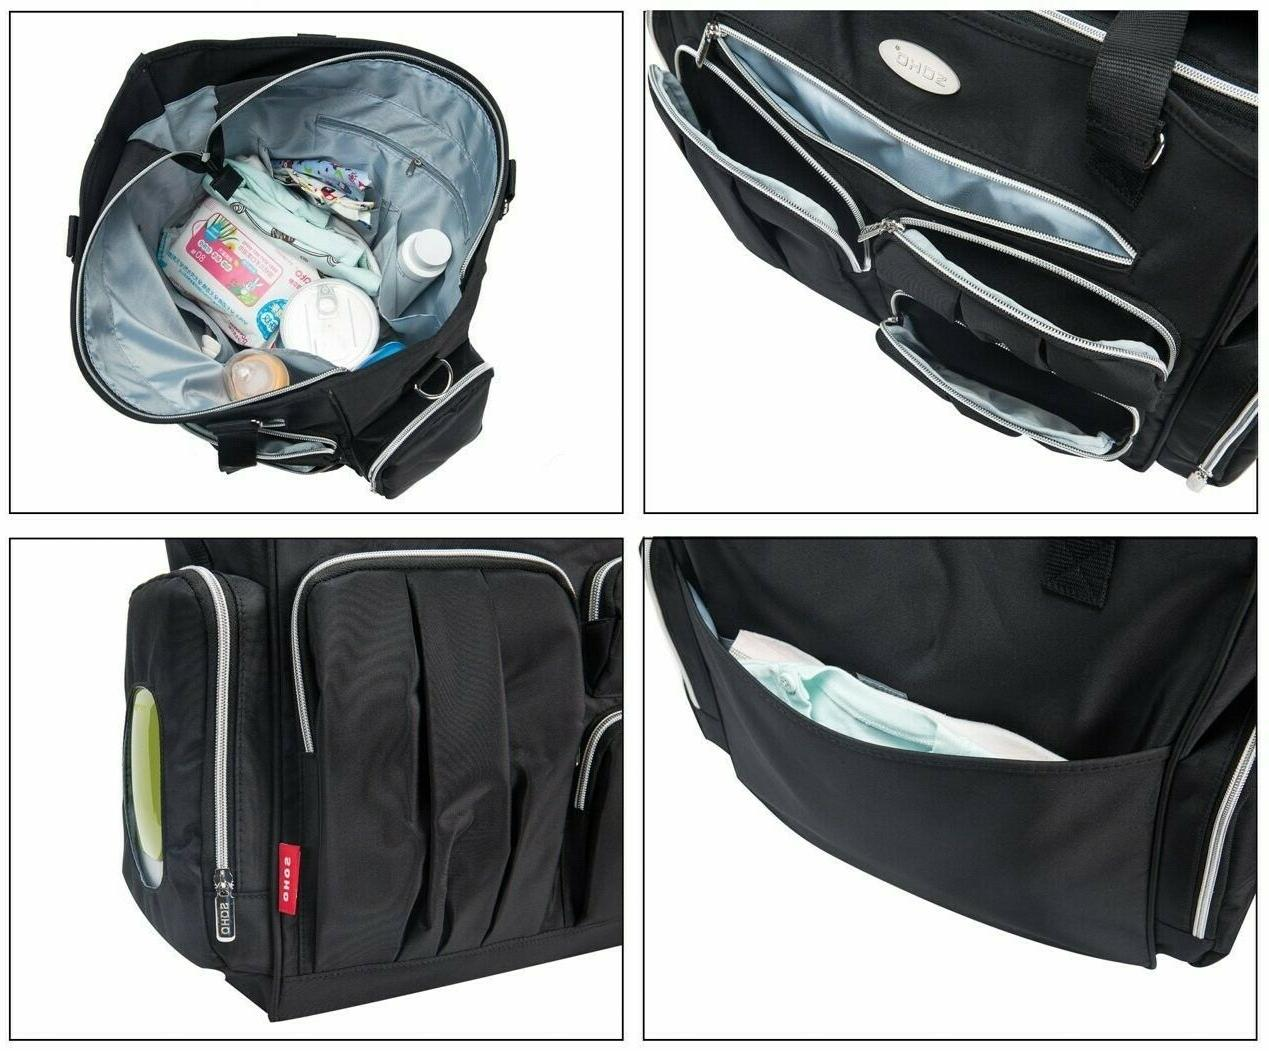 Graco Stroller with Car Travel System